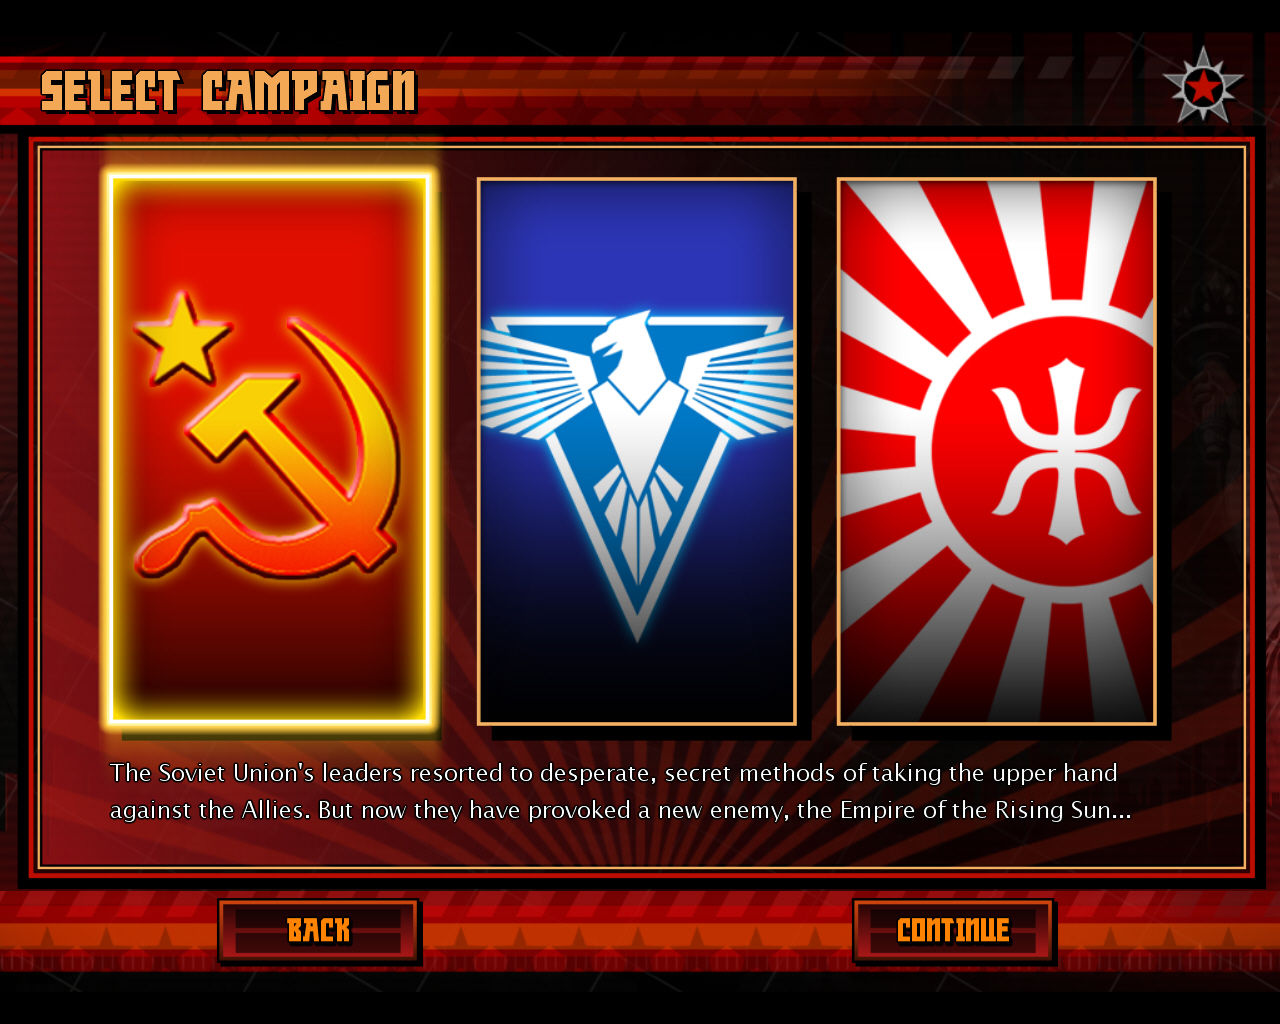 Command & Conquer: Red Alert 3 Windows Campaign selection screen.